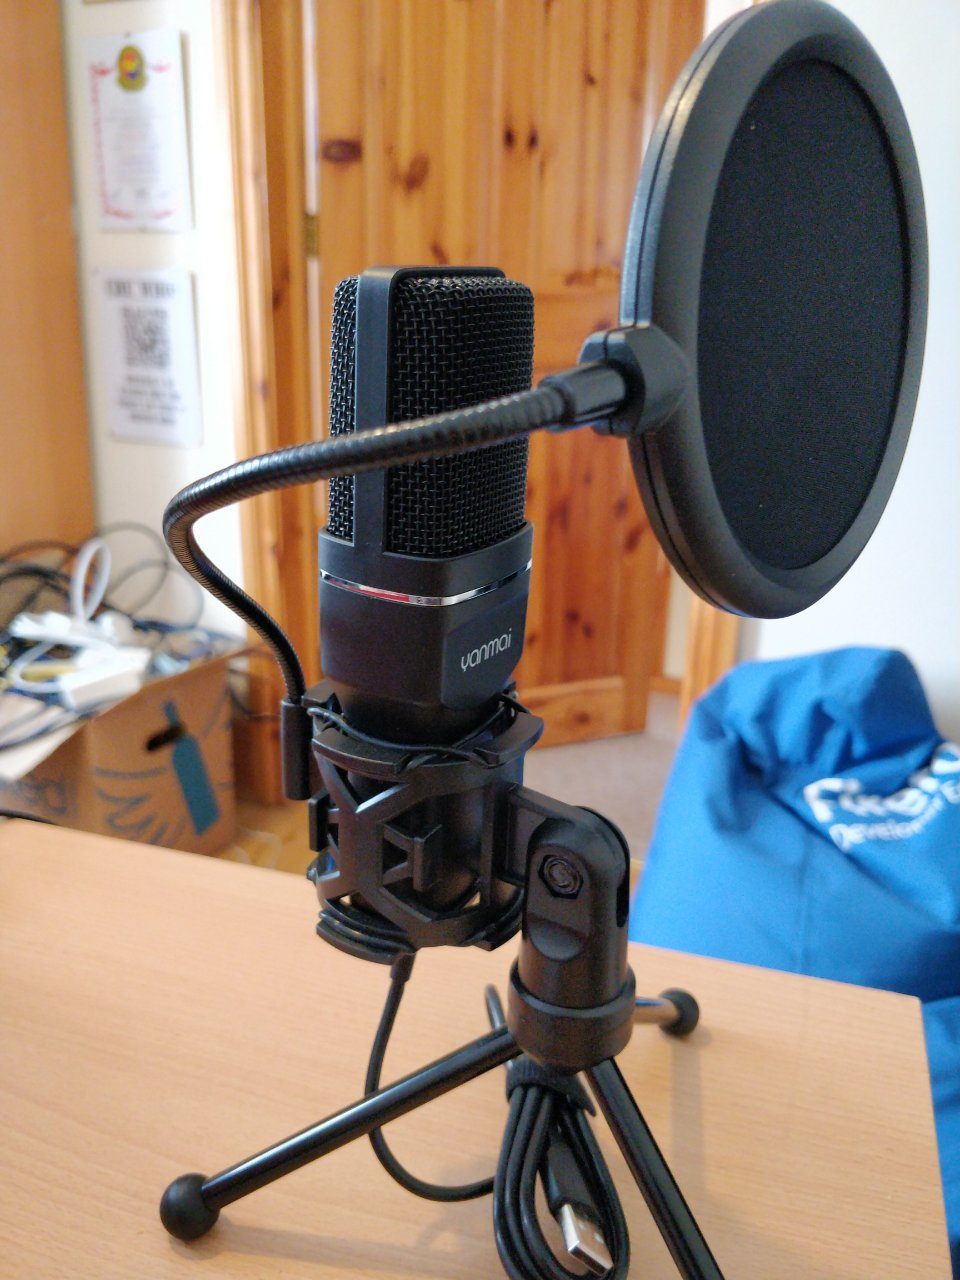 An upright microphone.